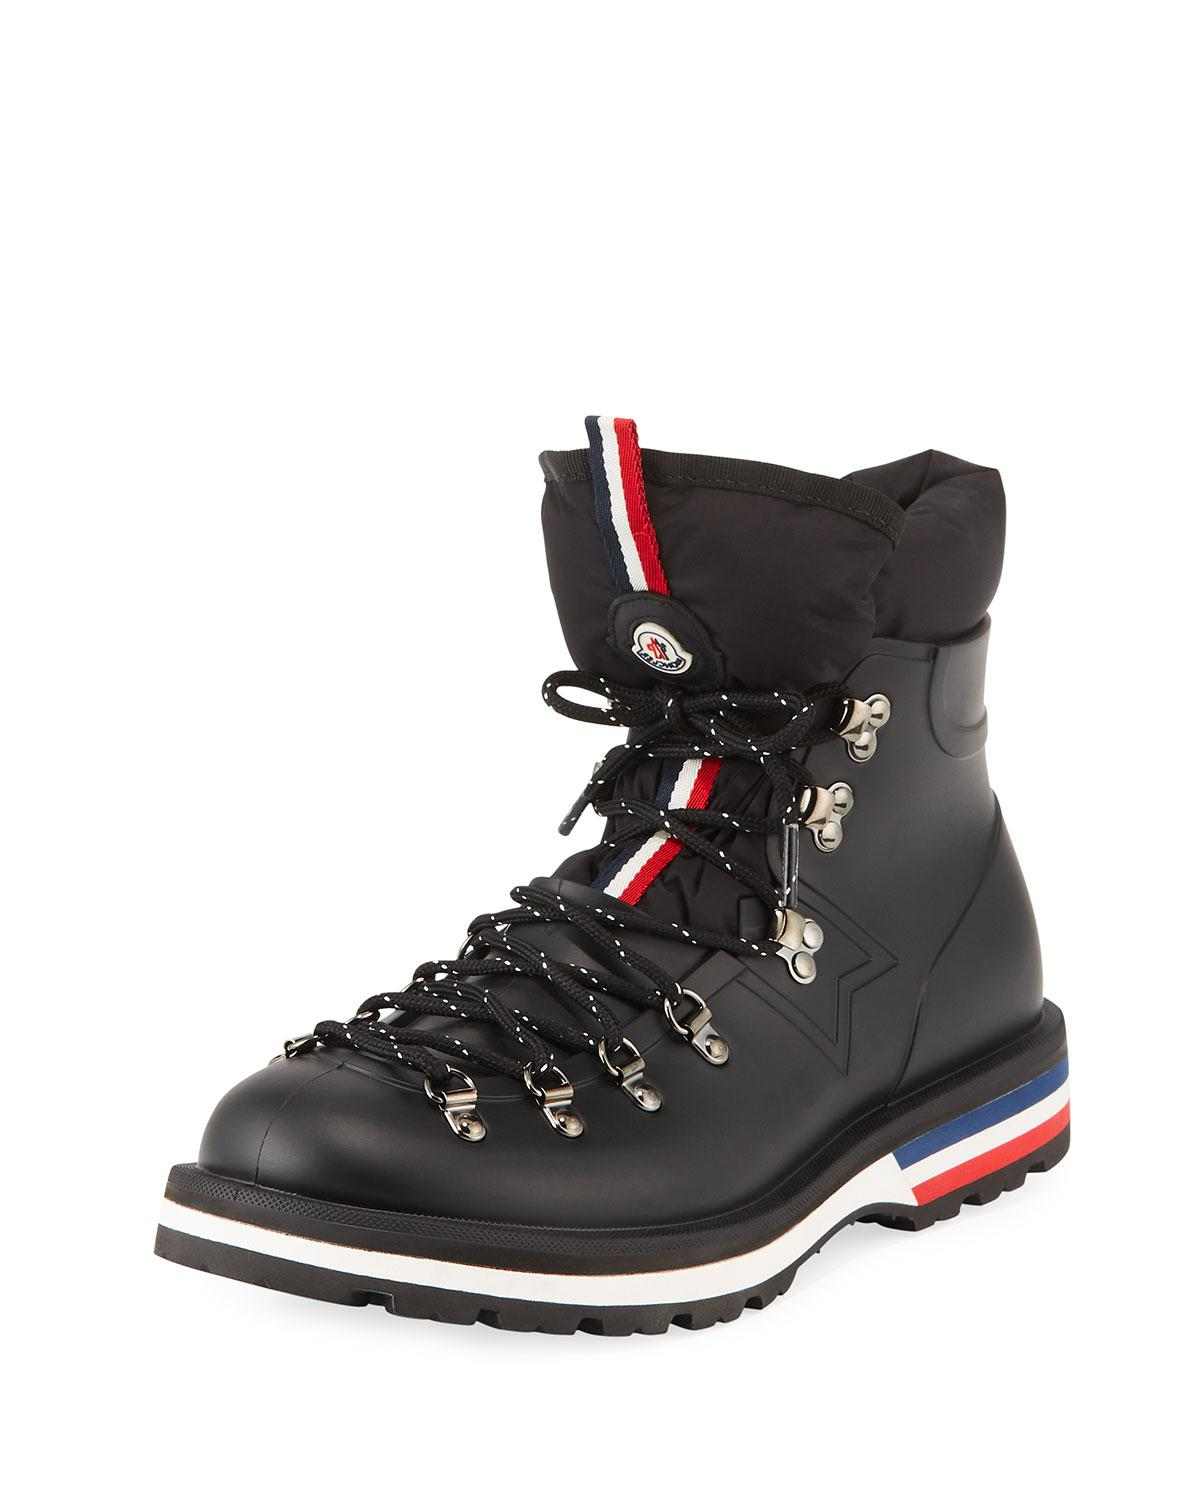 92be0bbbd1c Moncler Men's Henoc Water-resistant Hiking Boots in Black for Men - Lyst